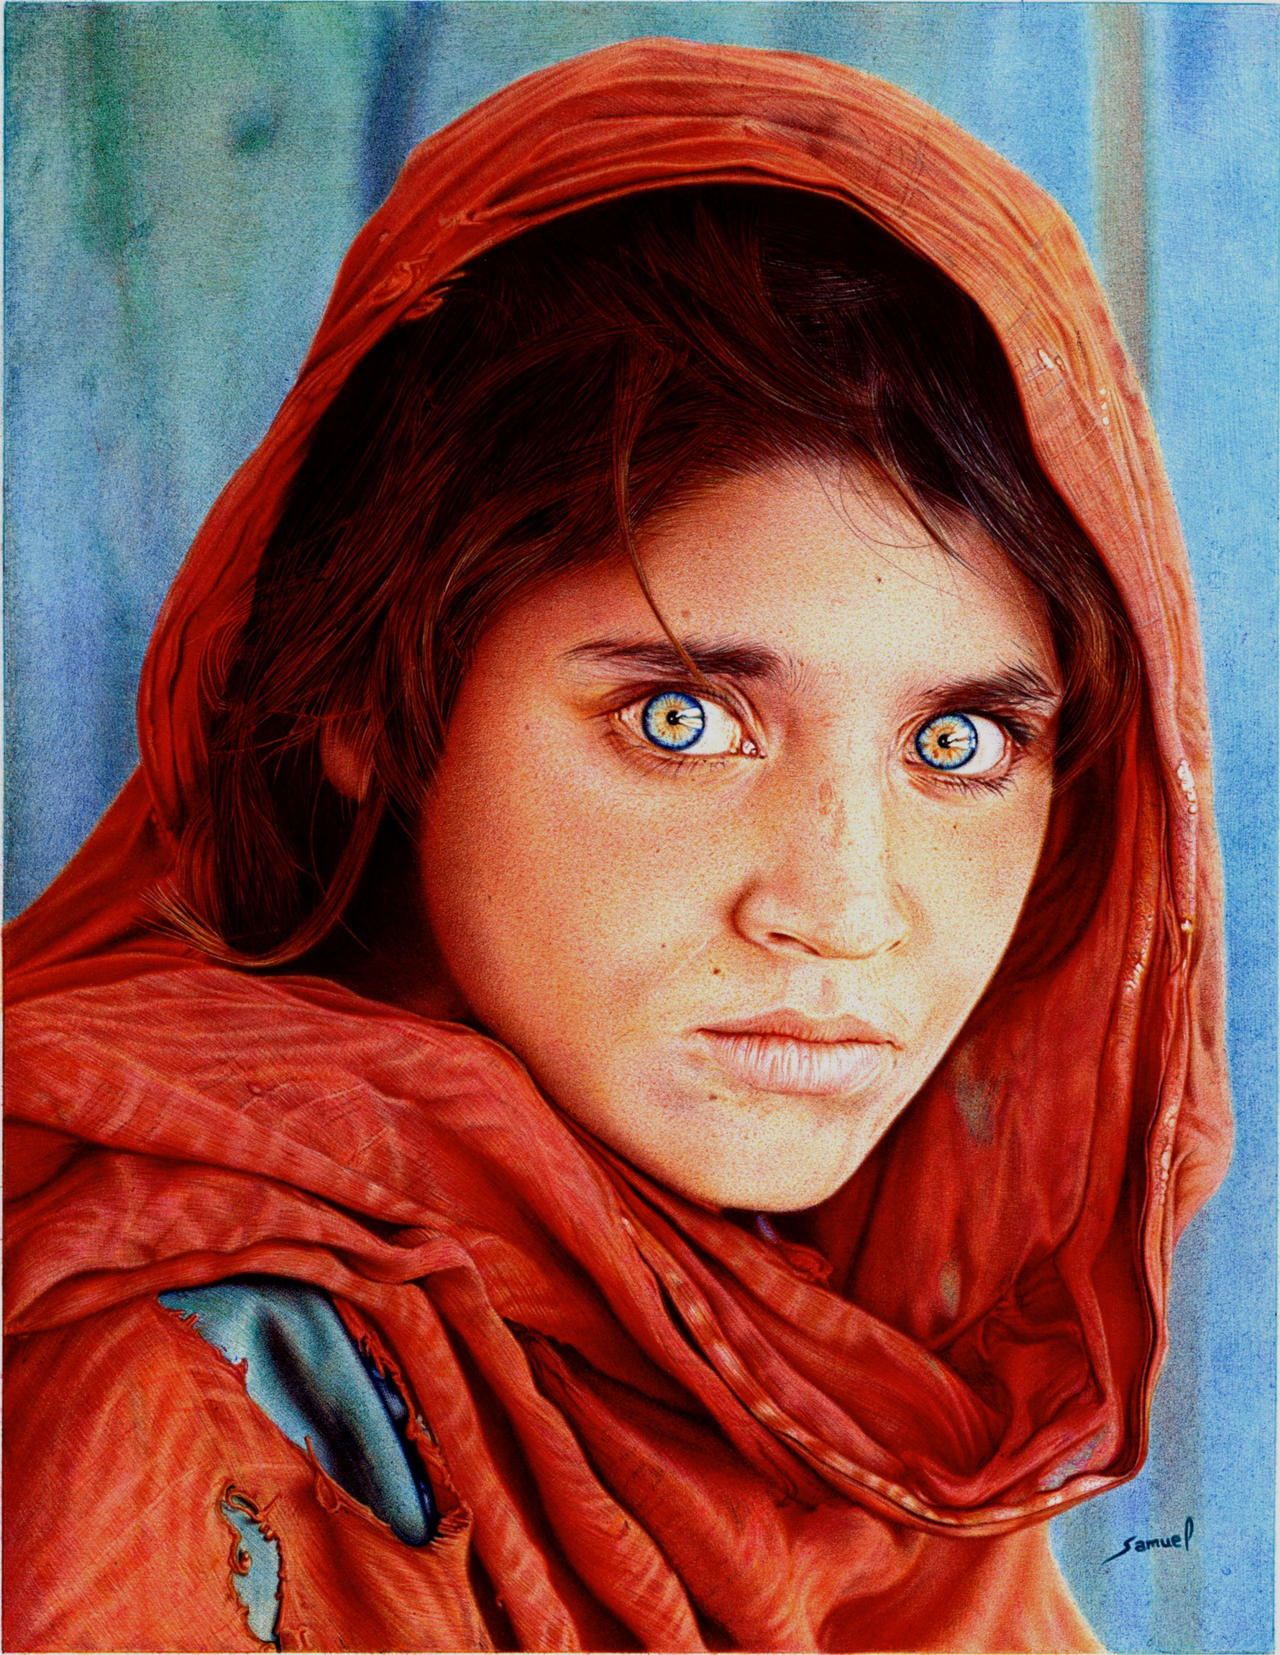 Color drawing pens for artists - Afghan Girl Ballpoint Pen